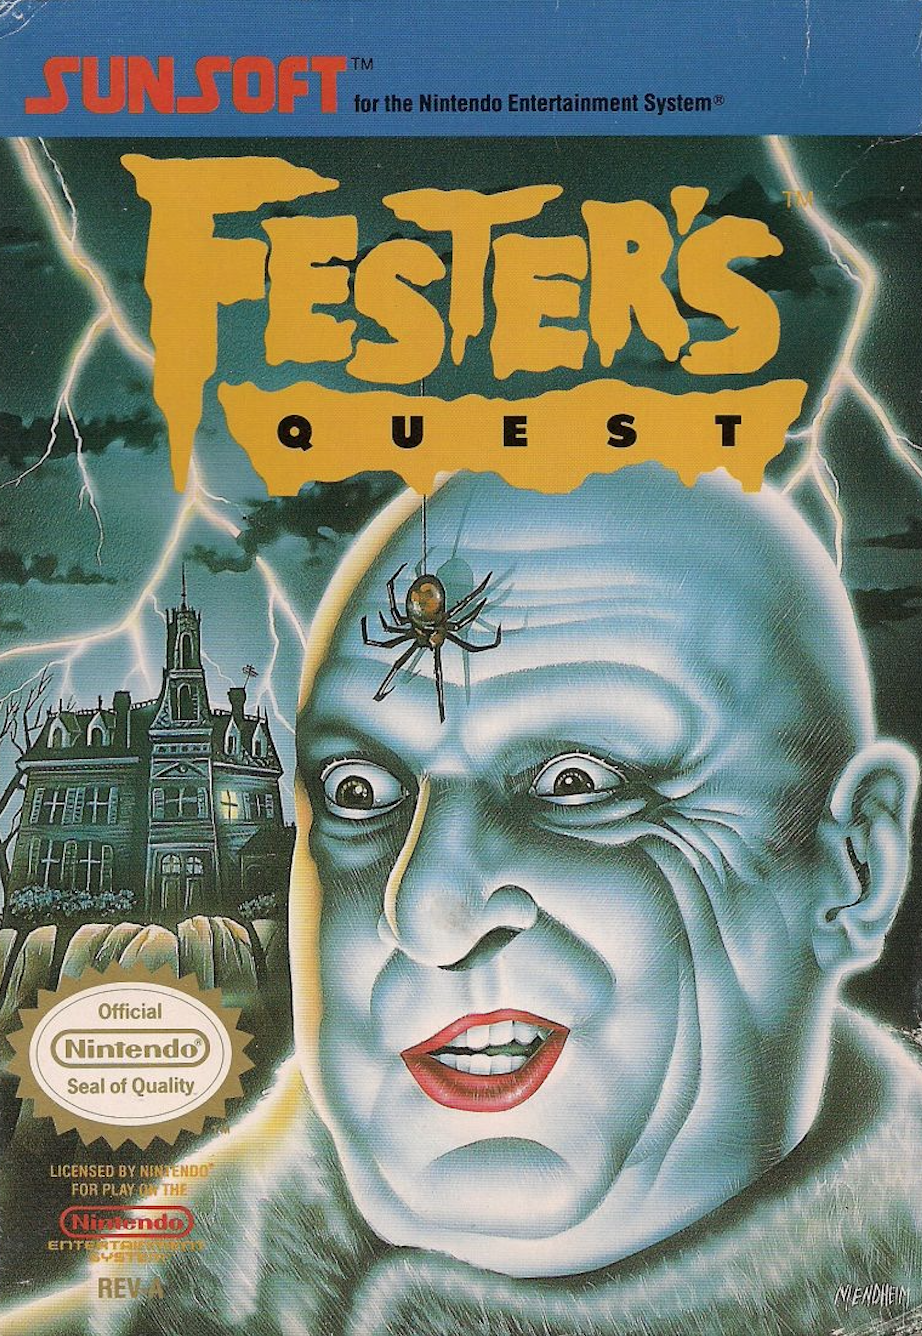 addams_family_festers_quest_review_the_splintering_box_art.png